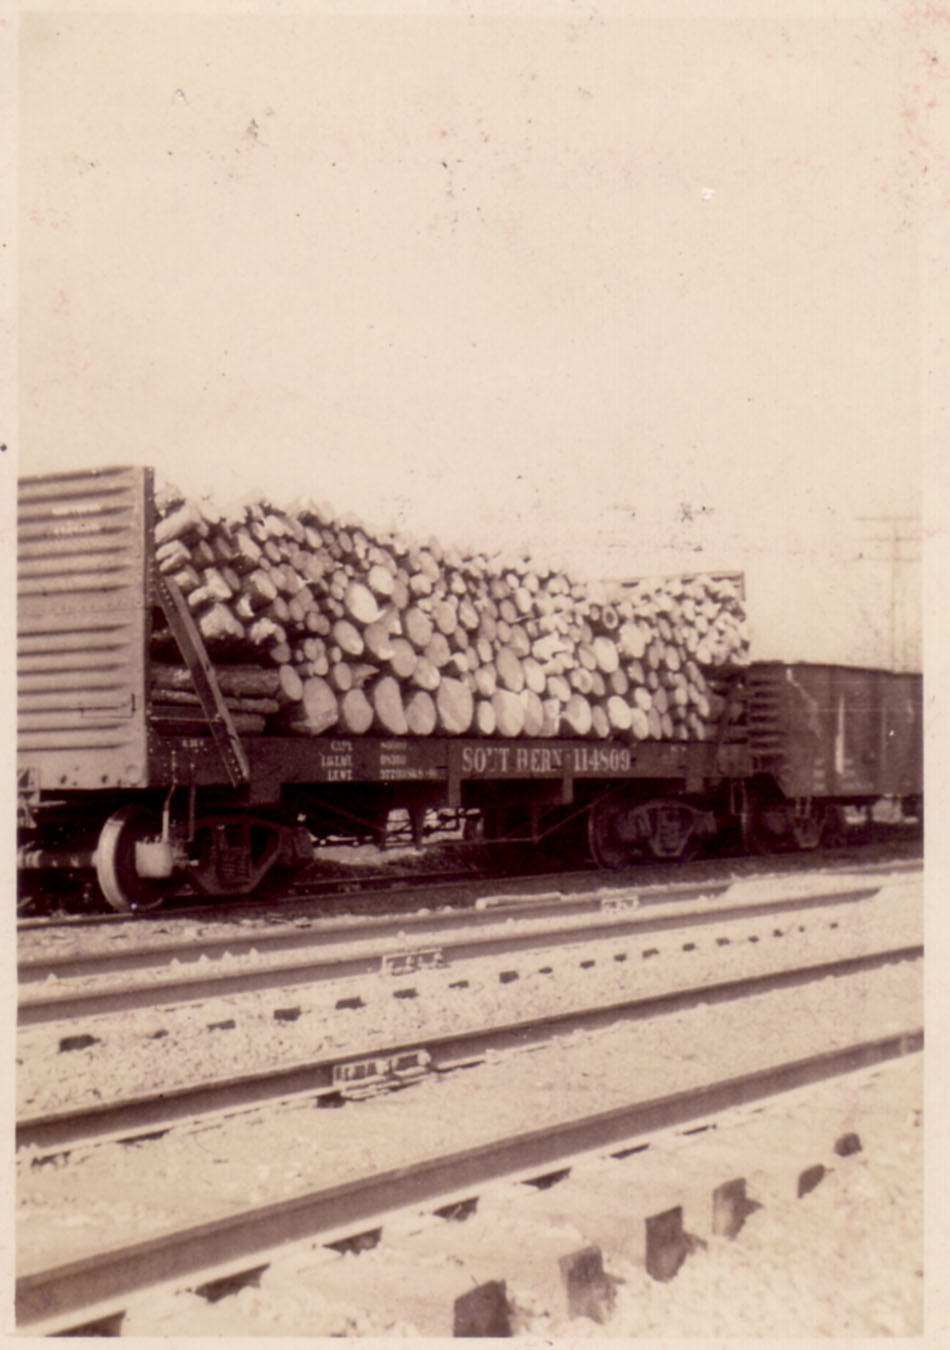 Cord wood loaded and shipped from area just north of depot.  Photo by Hudnalle McLean Sr.